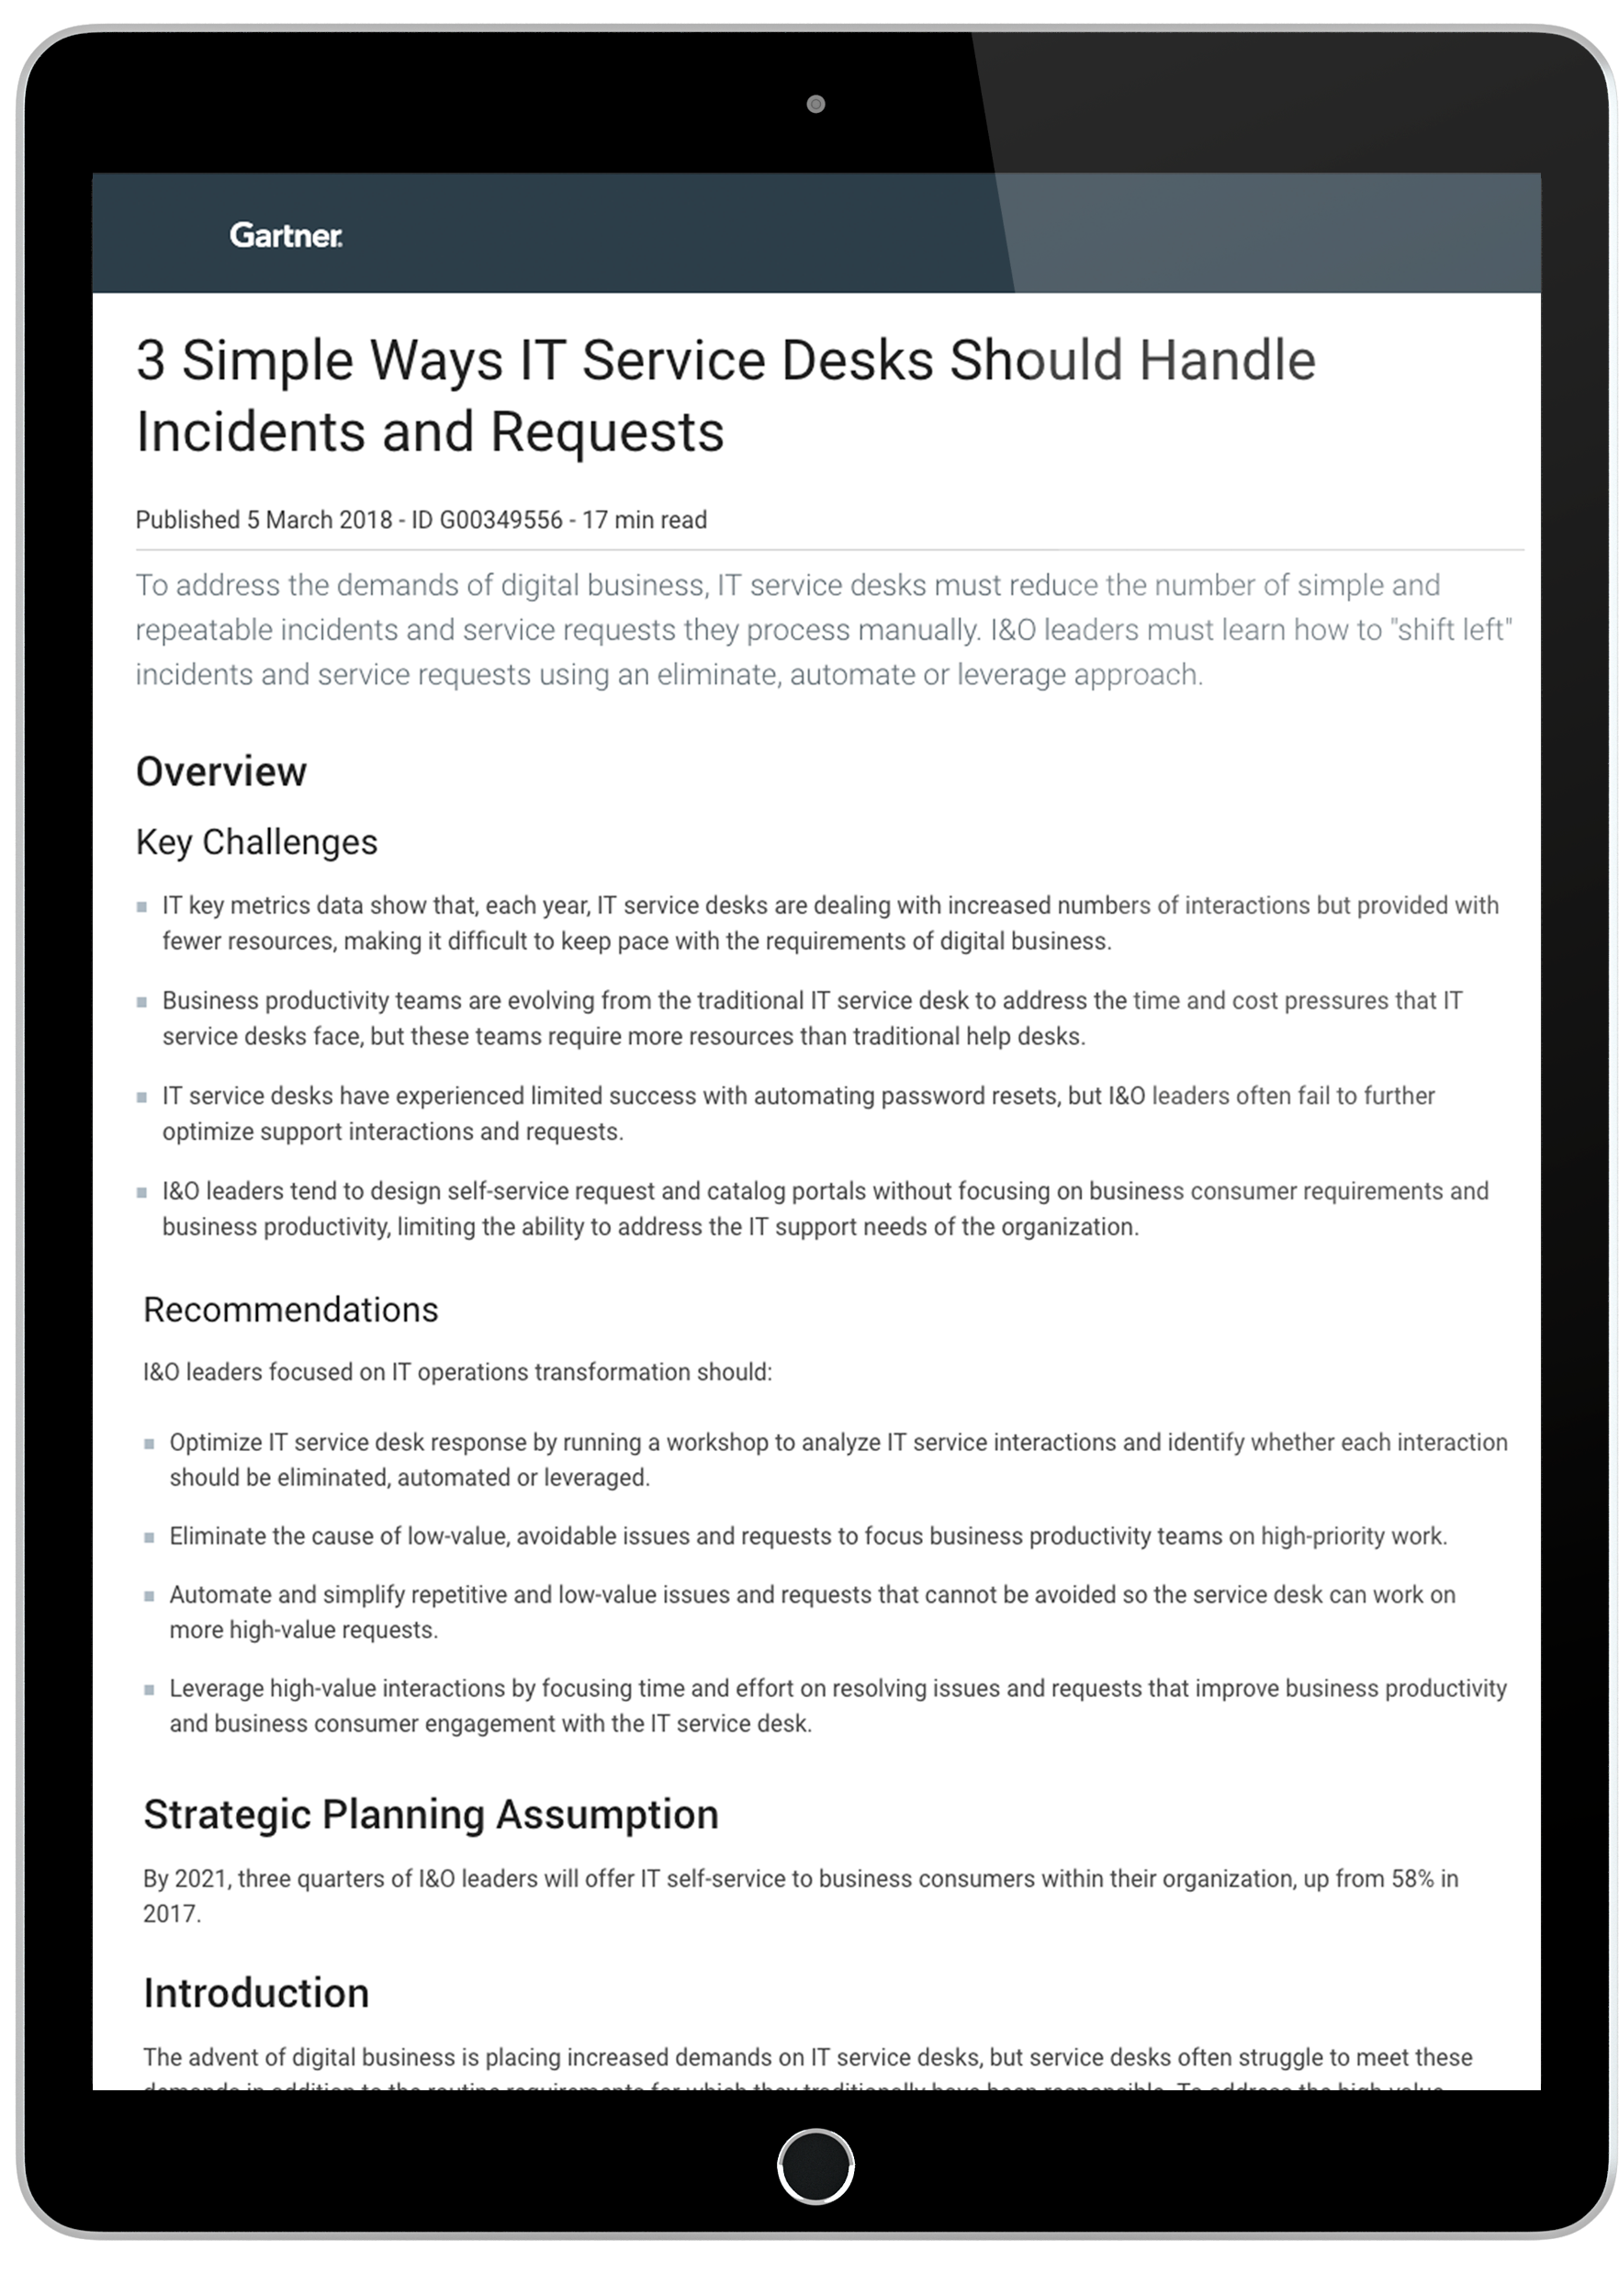 Gartner Report 3 Simple Ways IT Service Desks Should Handle Incidents and Requests